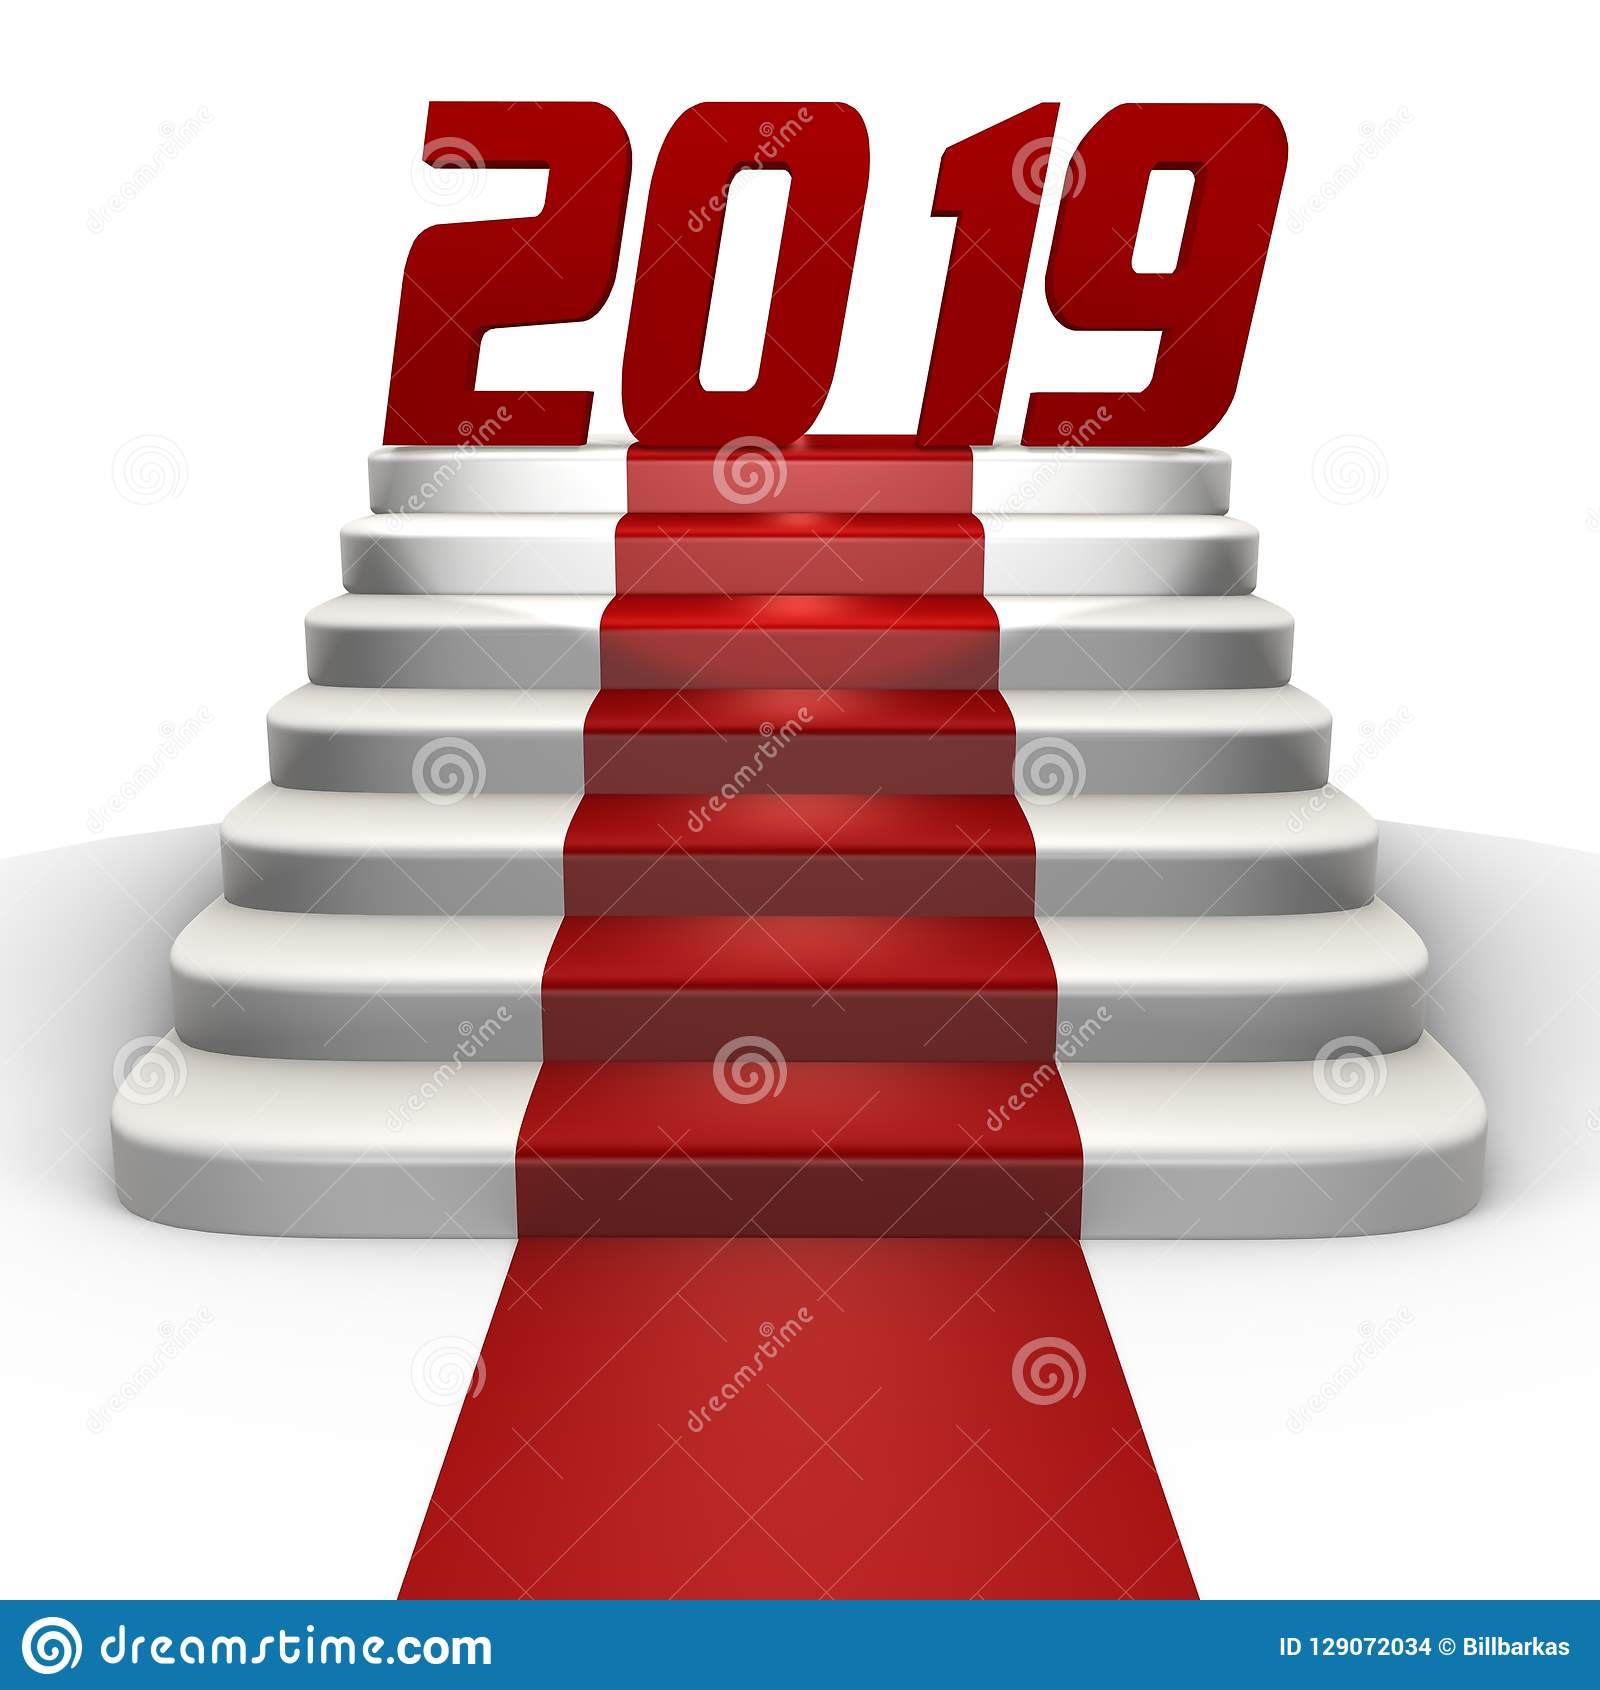 New year 2019 on a red carpet - a 3d image